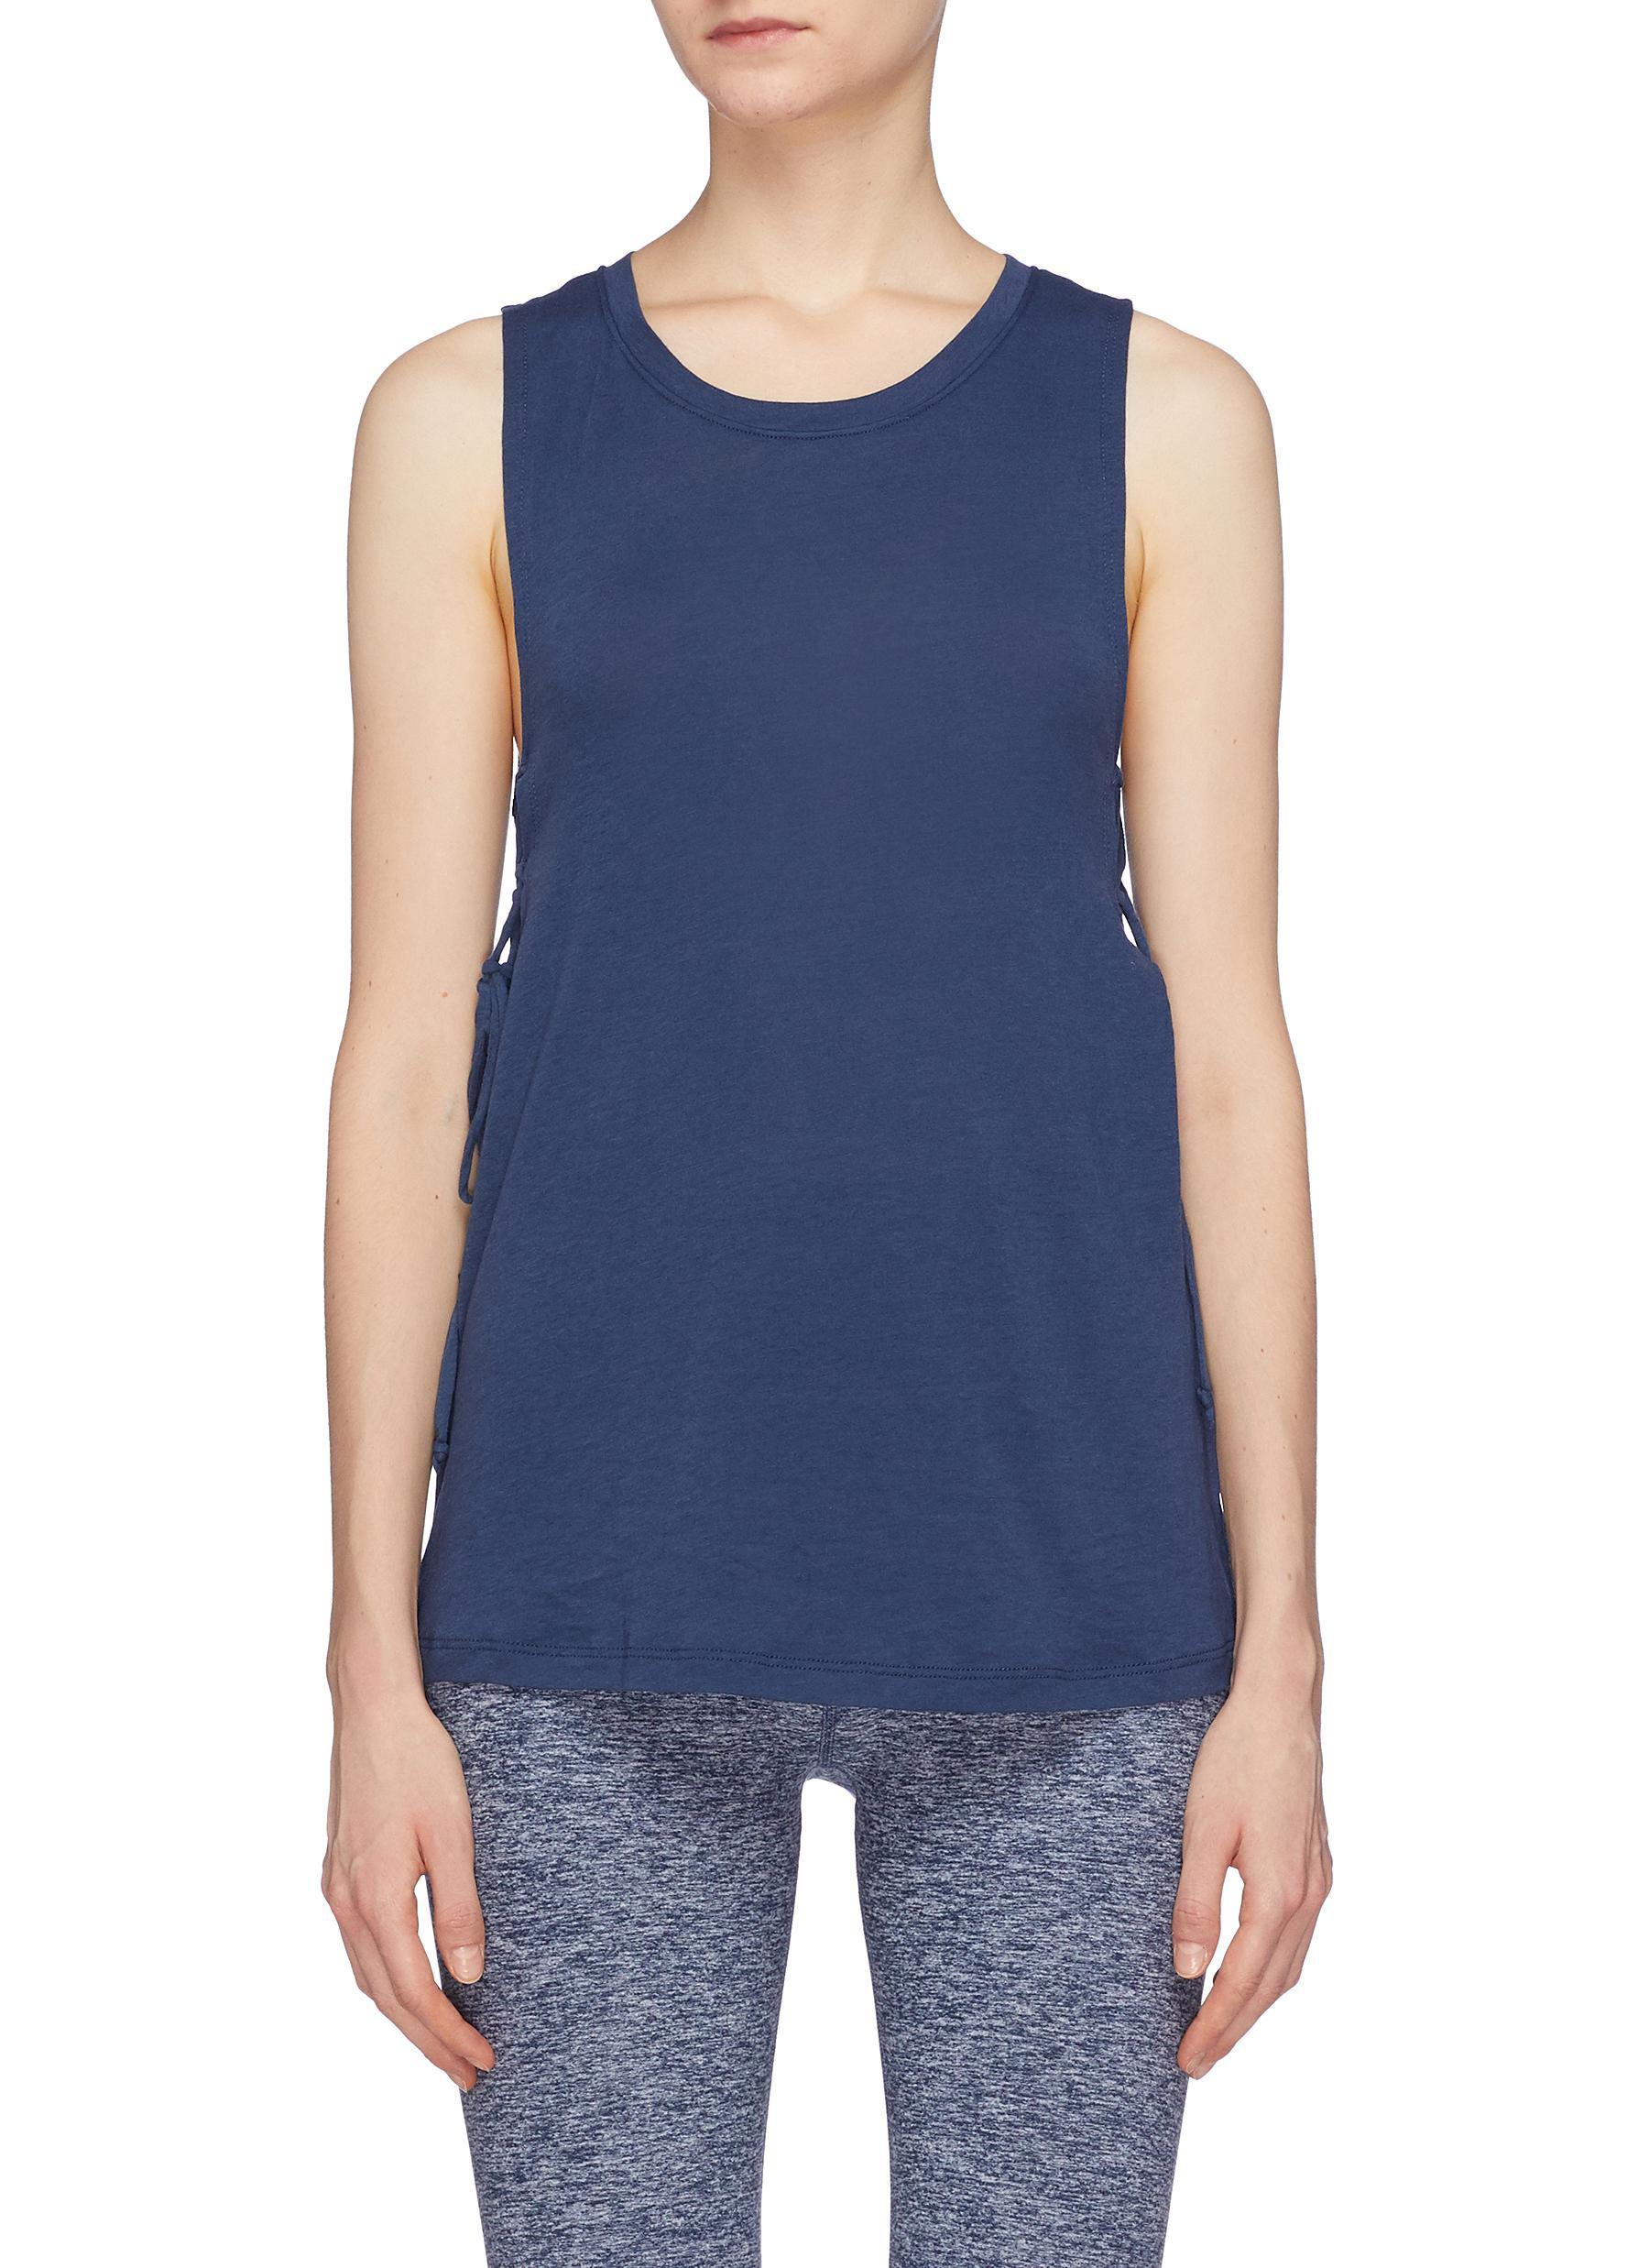 bfe7e5843b7ed8 Lyst - Beyond Yoga  starcrossed  Lace-up Side Tank Top in Blue